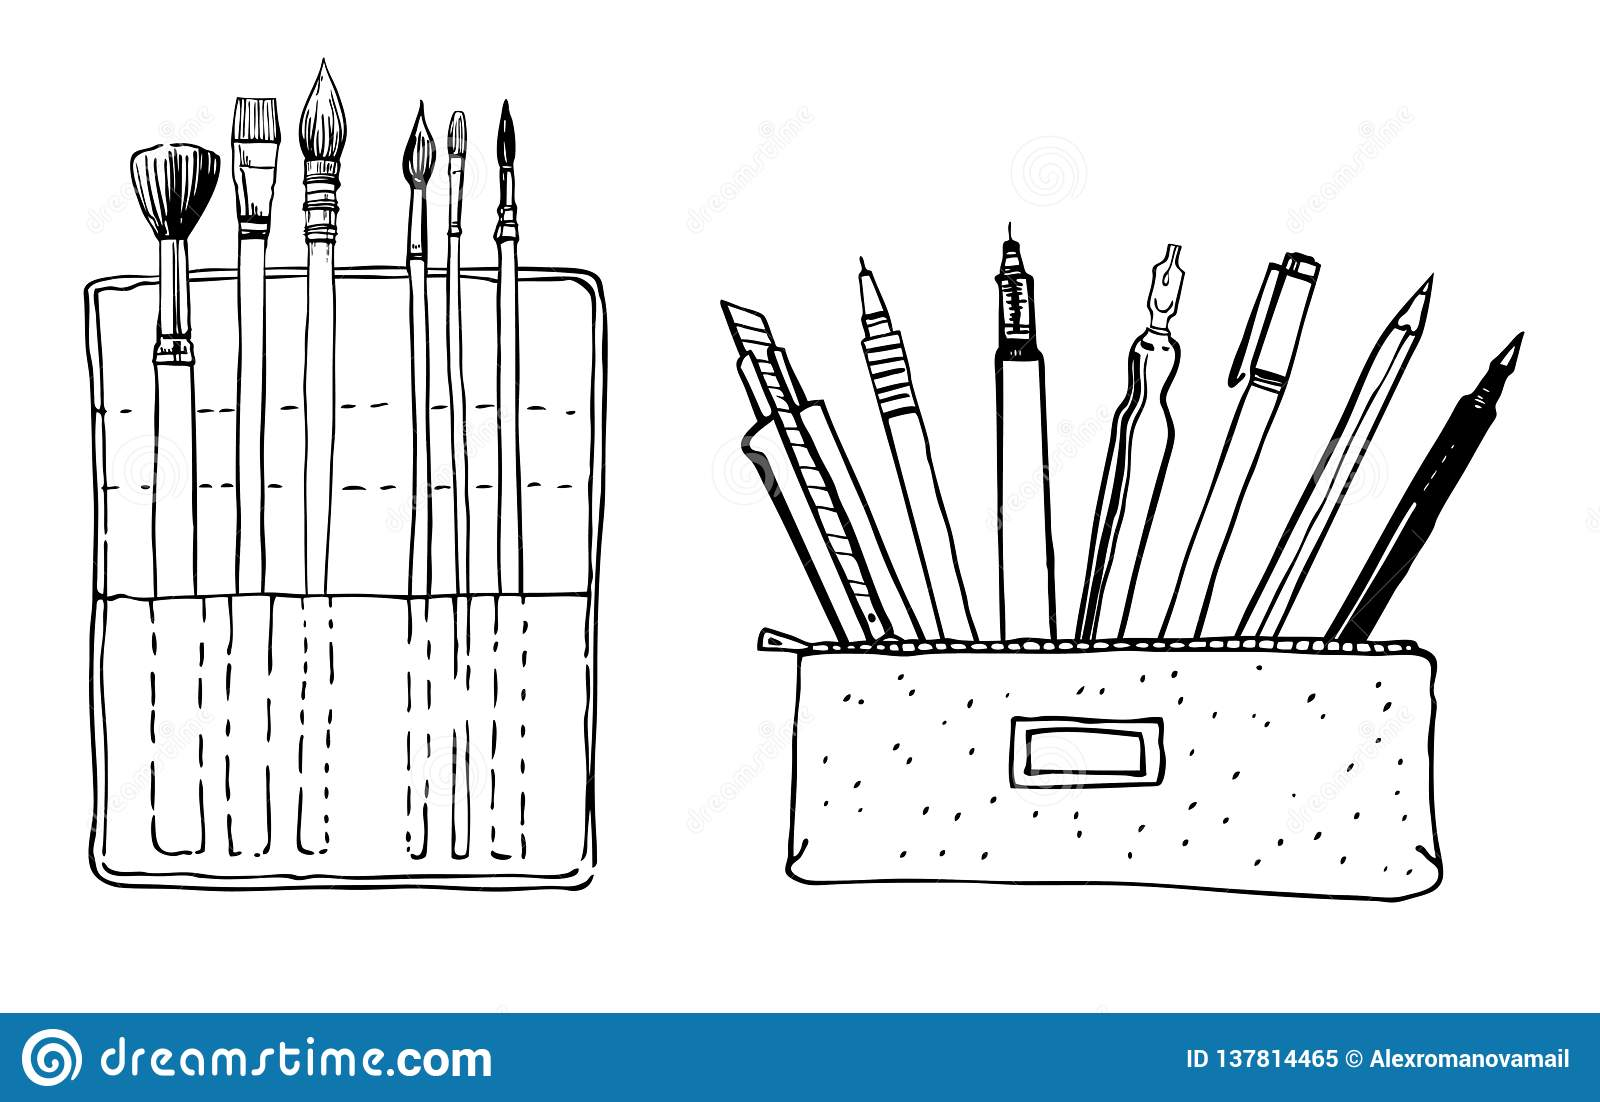 Brush and pencil cases set of hand drawn sketch vector